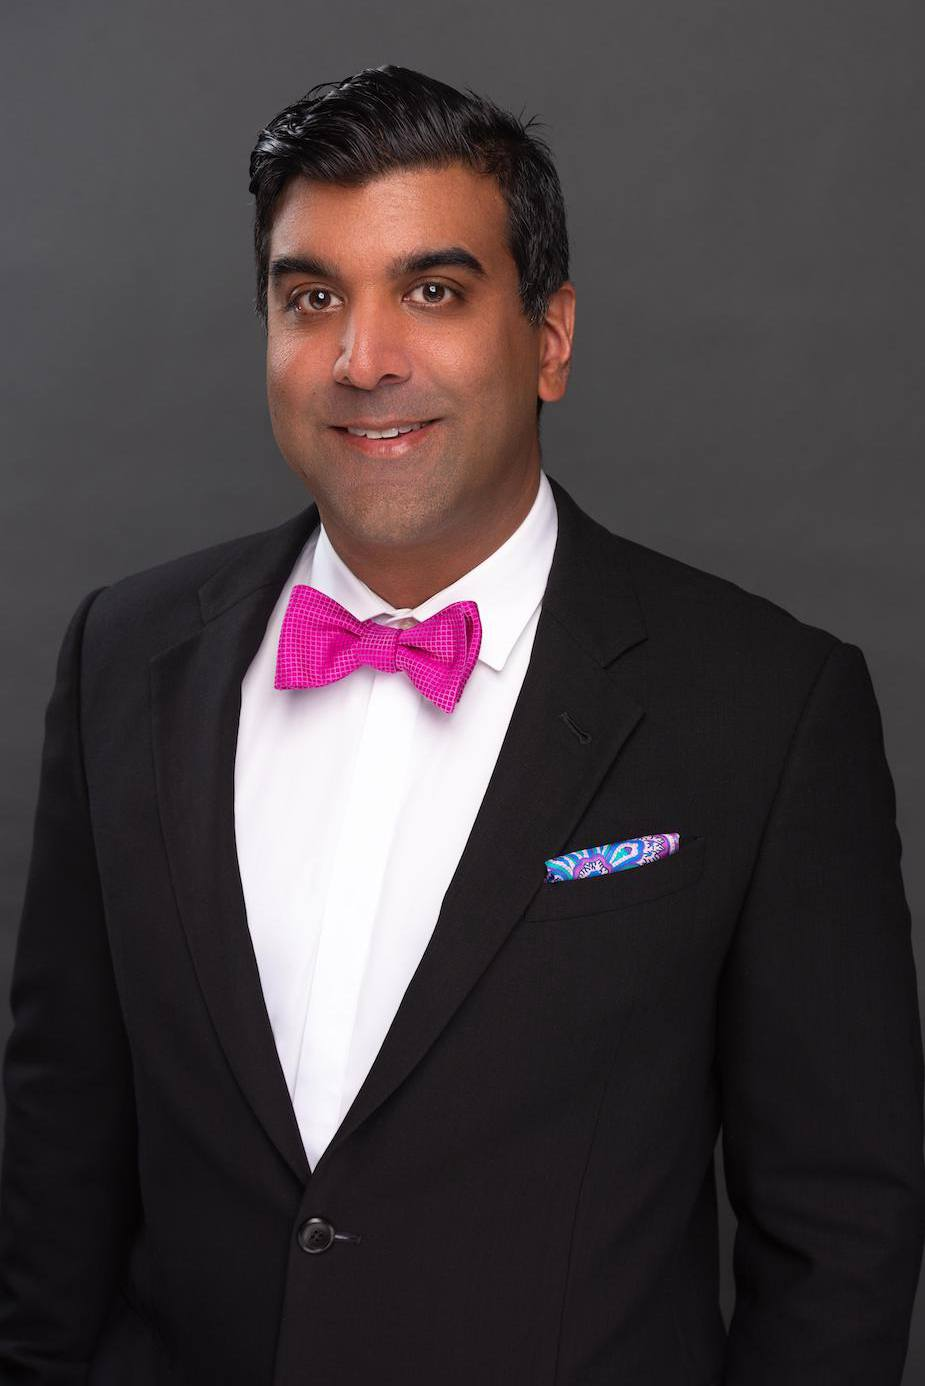 Plastic Surgeon in The Woodlands, TX - Dr. Paul Gill